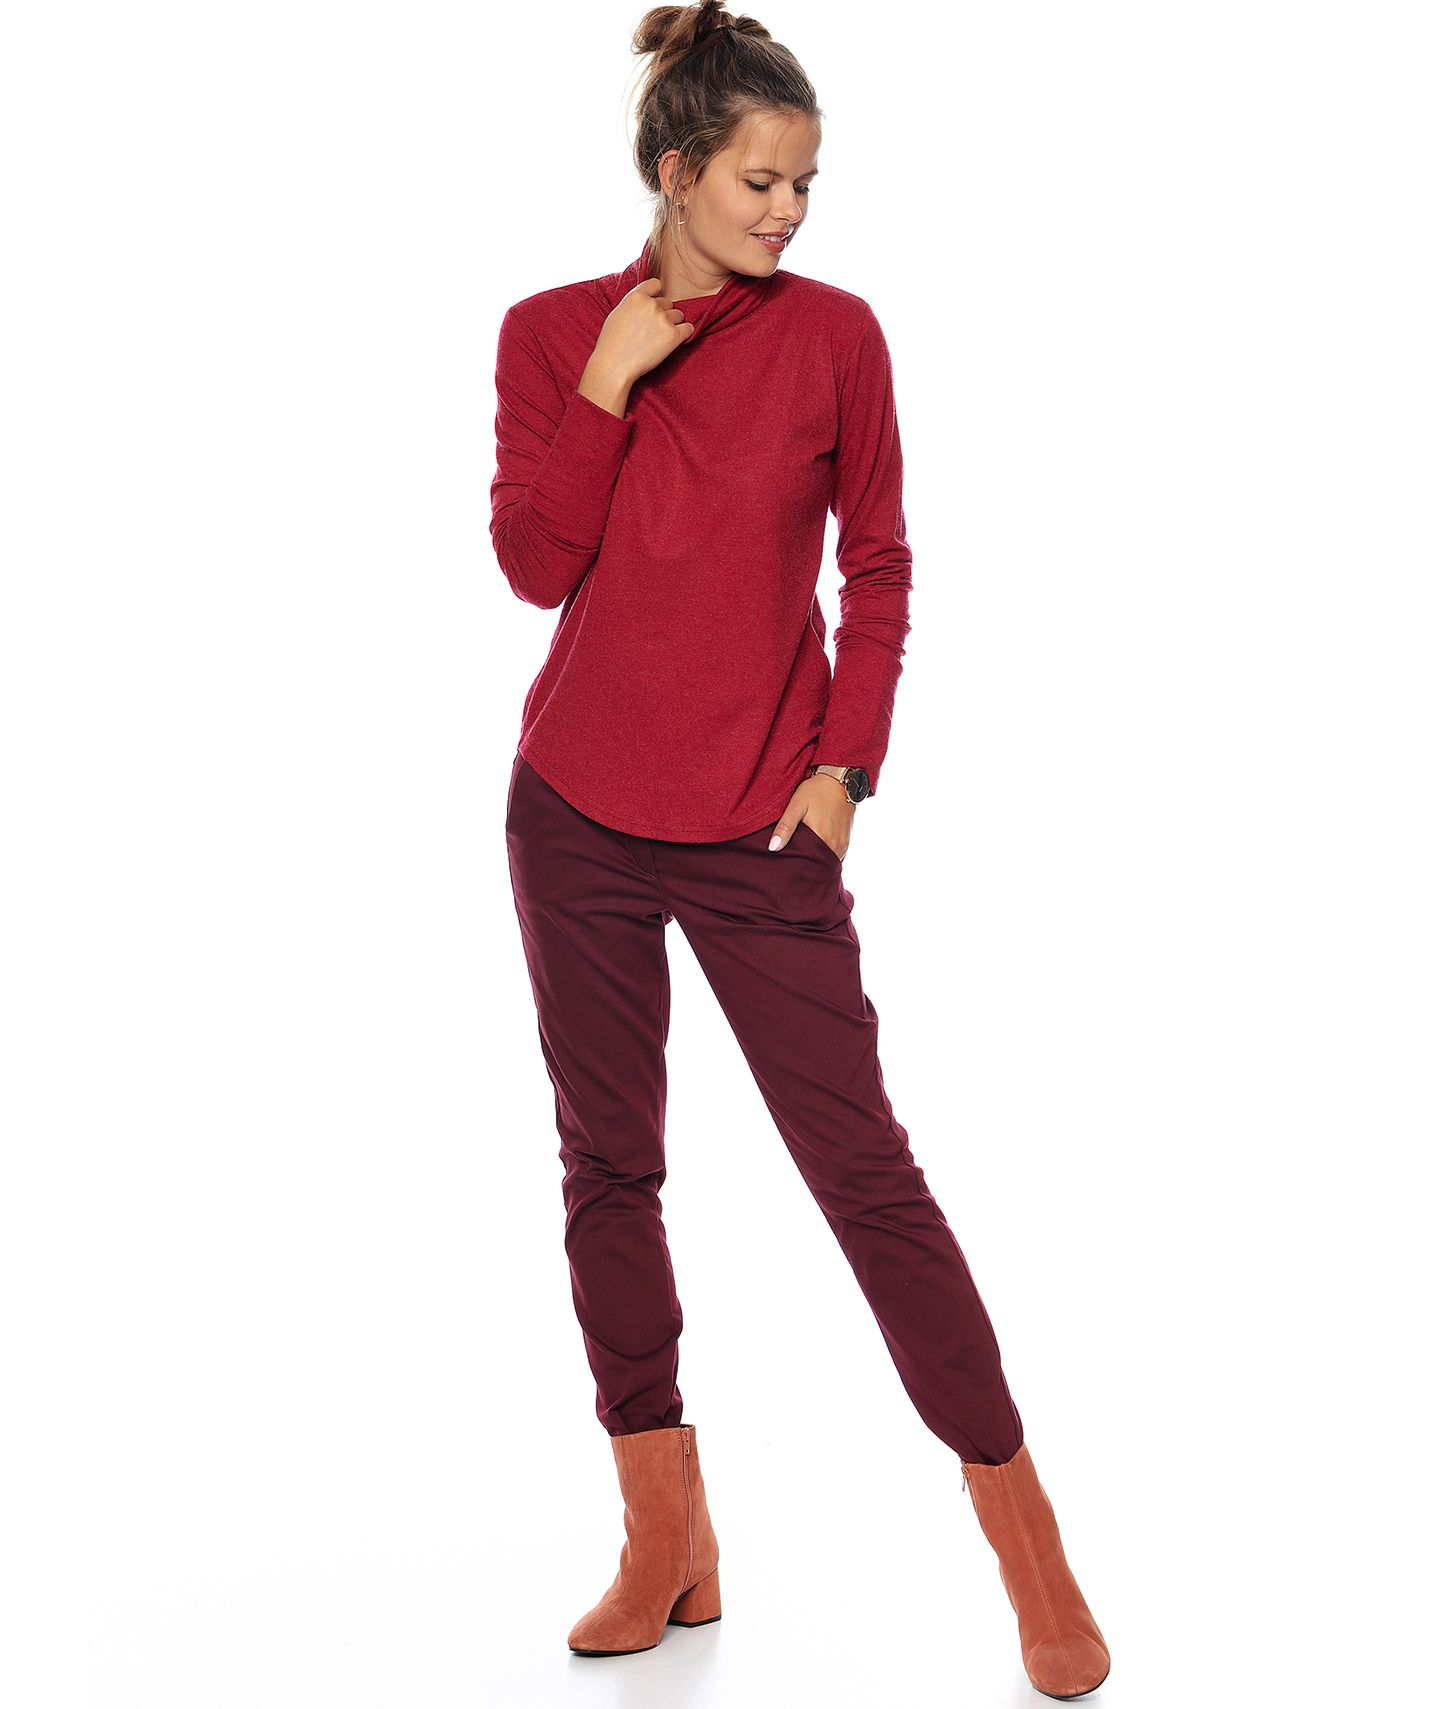 spodnie MAXINE COLOR bordo